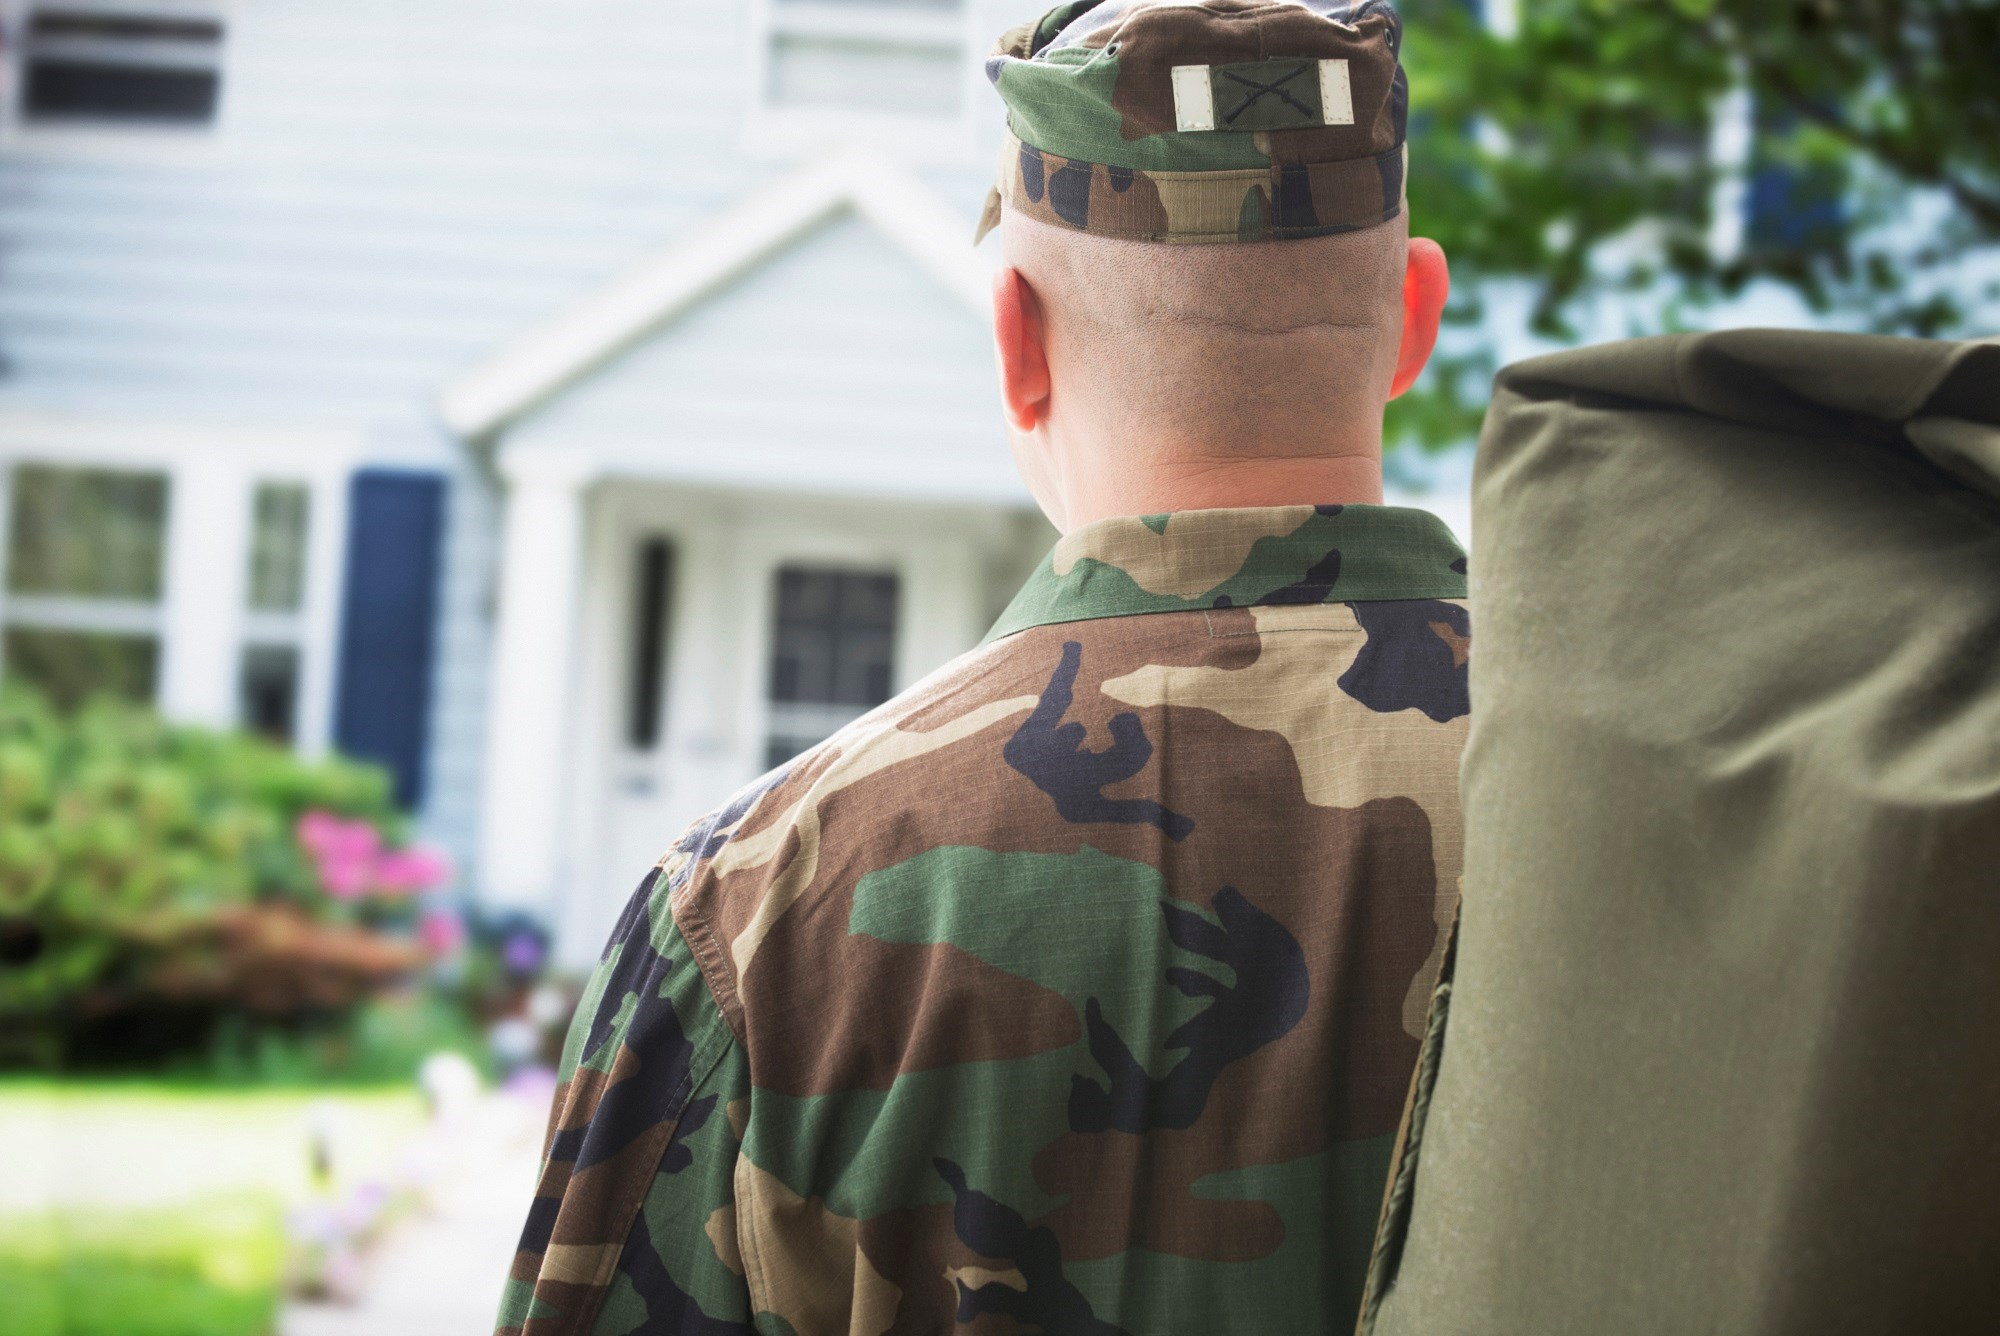 Based on their findings, researchers noted the importance of follow-up assessment of suicide risk, even among soldiers with low PTSD symptoms at homecoming.